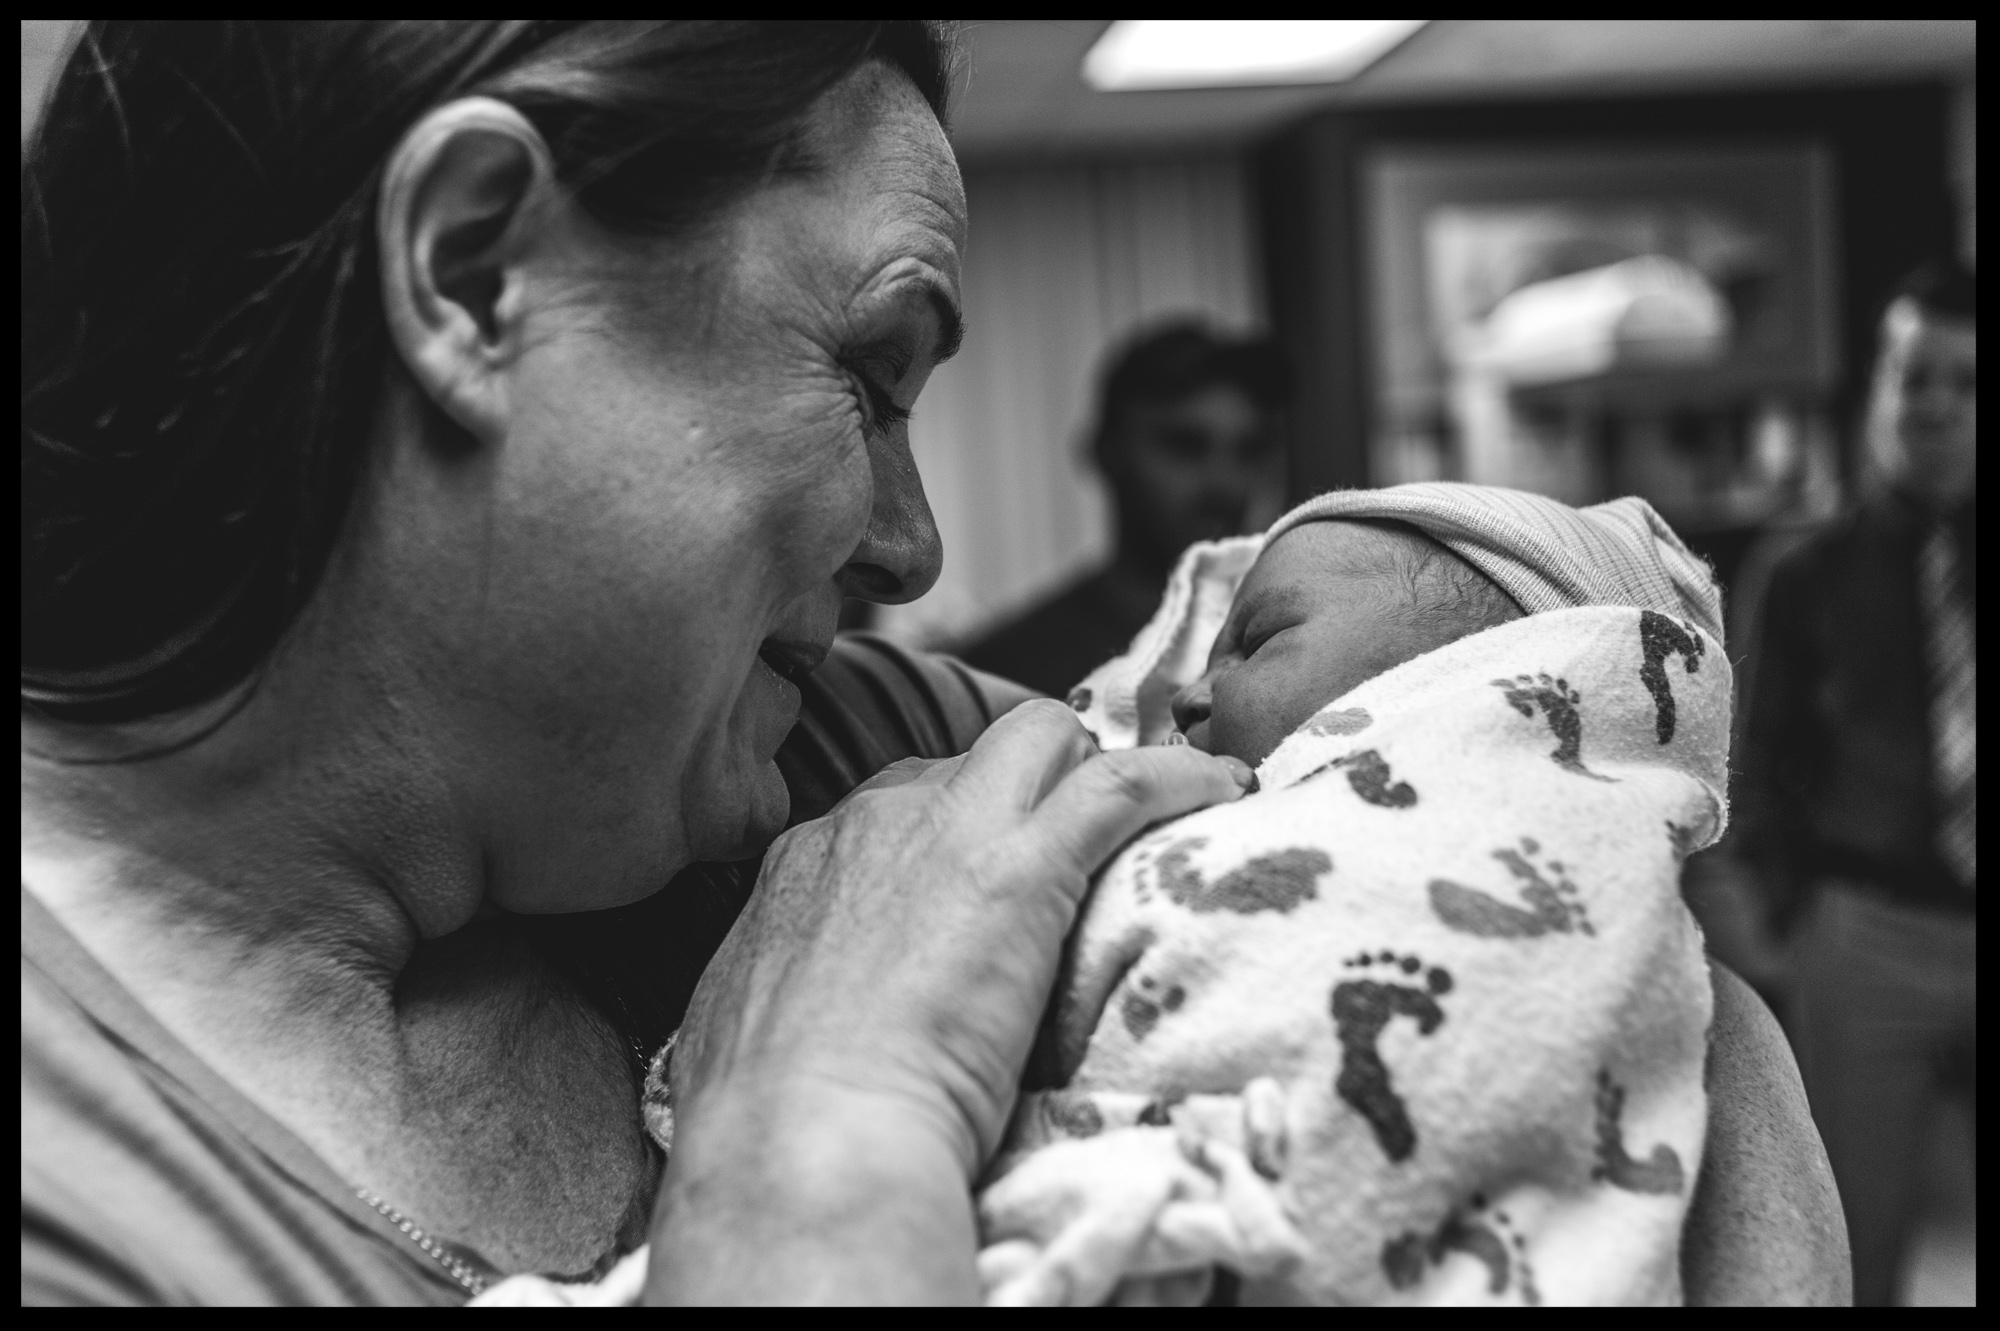 Grandmother holding her new baby granddaugher, black and white, Stillwater, OK